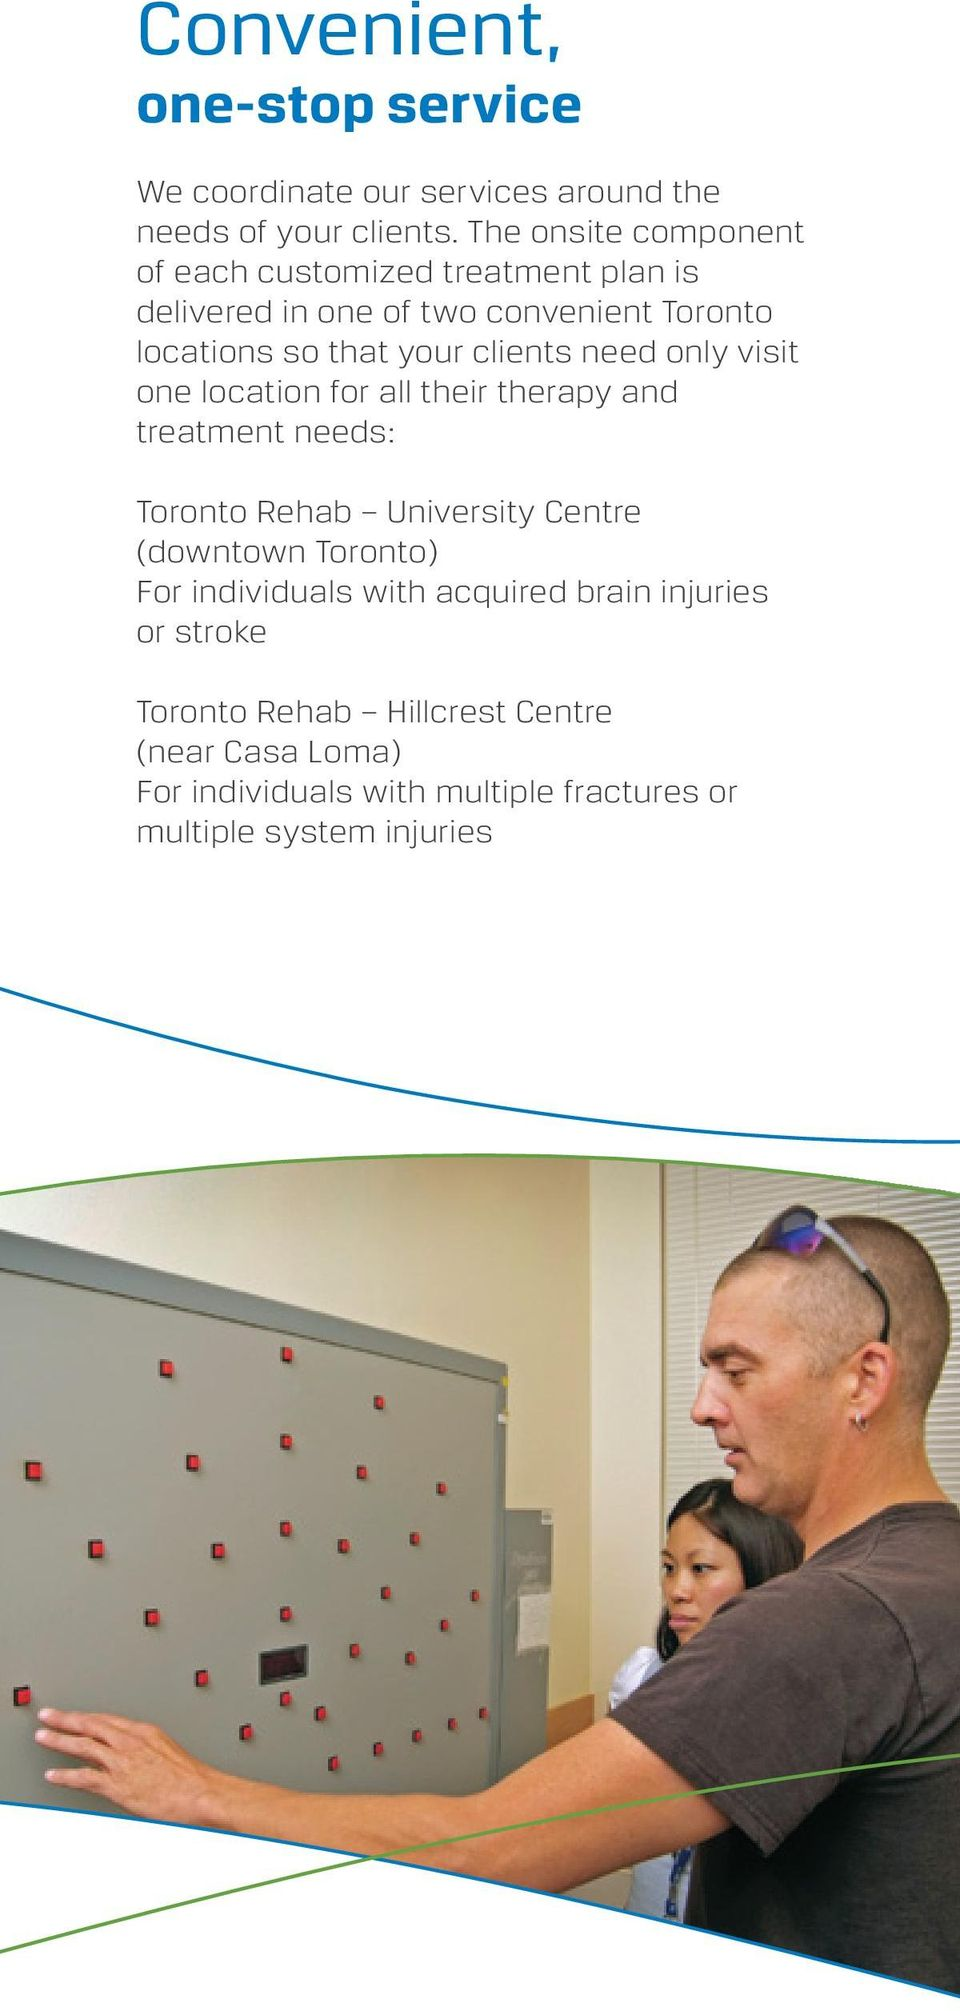 clients need only visit one location for all their therapy and treatment needs: Toronto Rehab University Centre (downtown